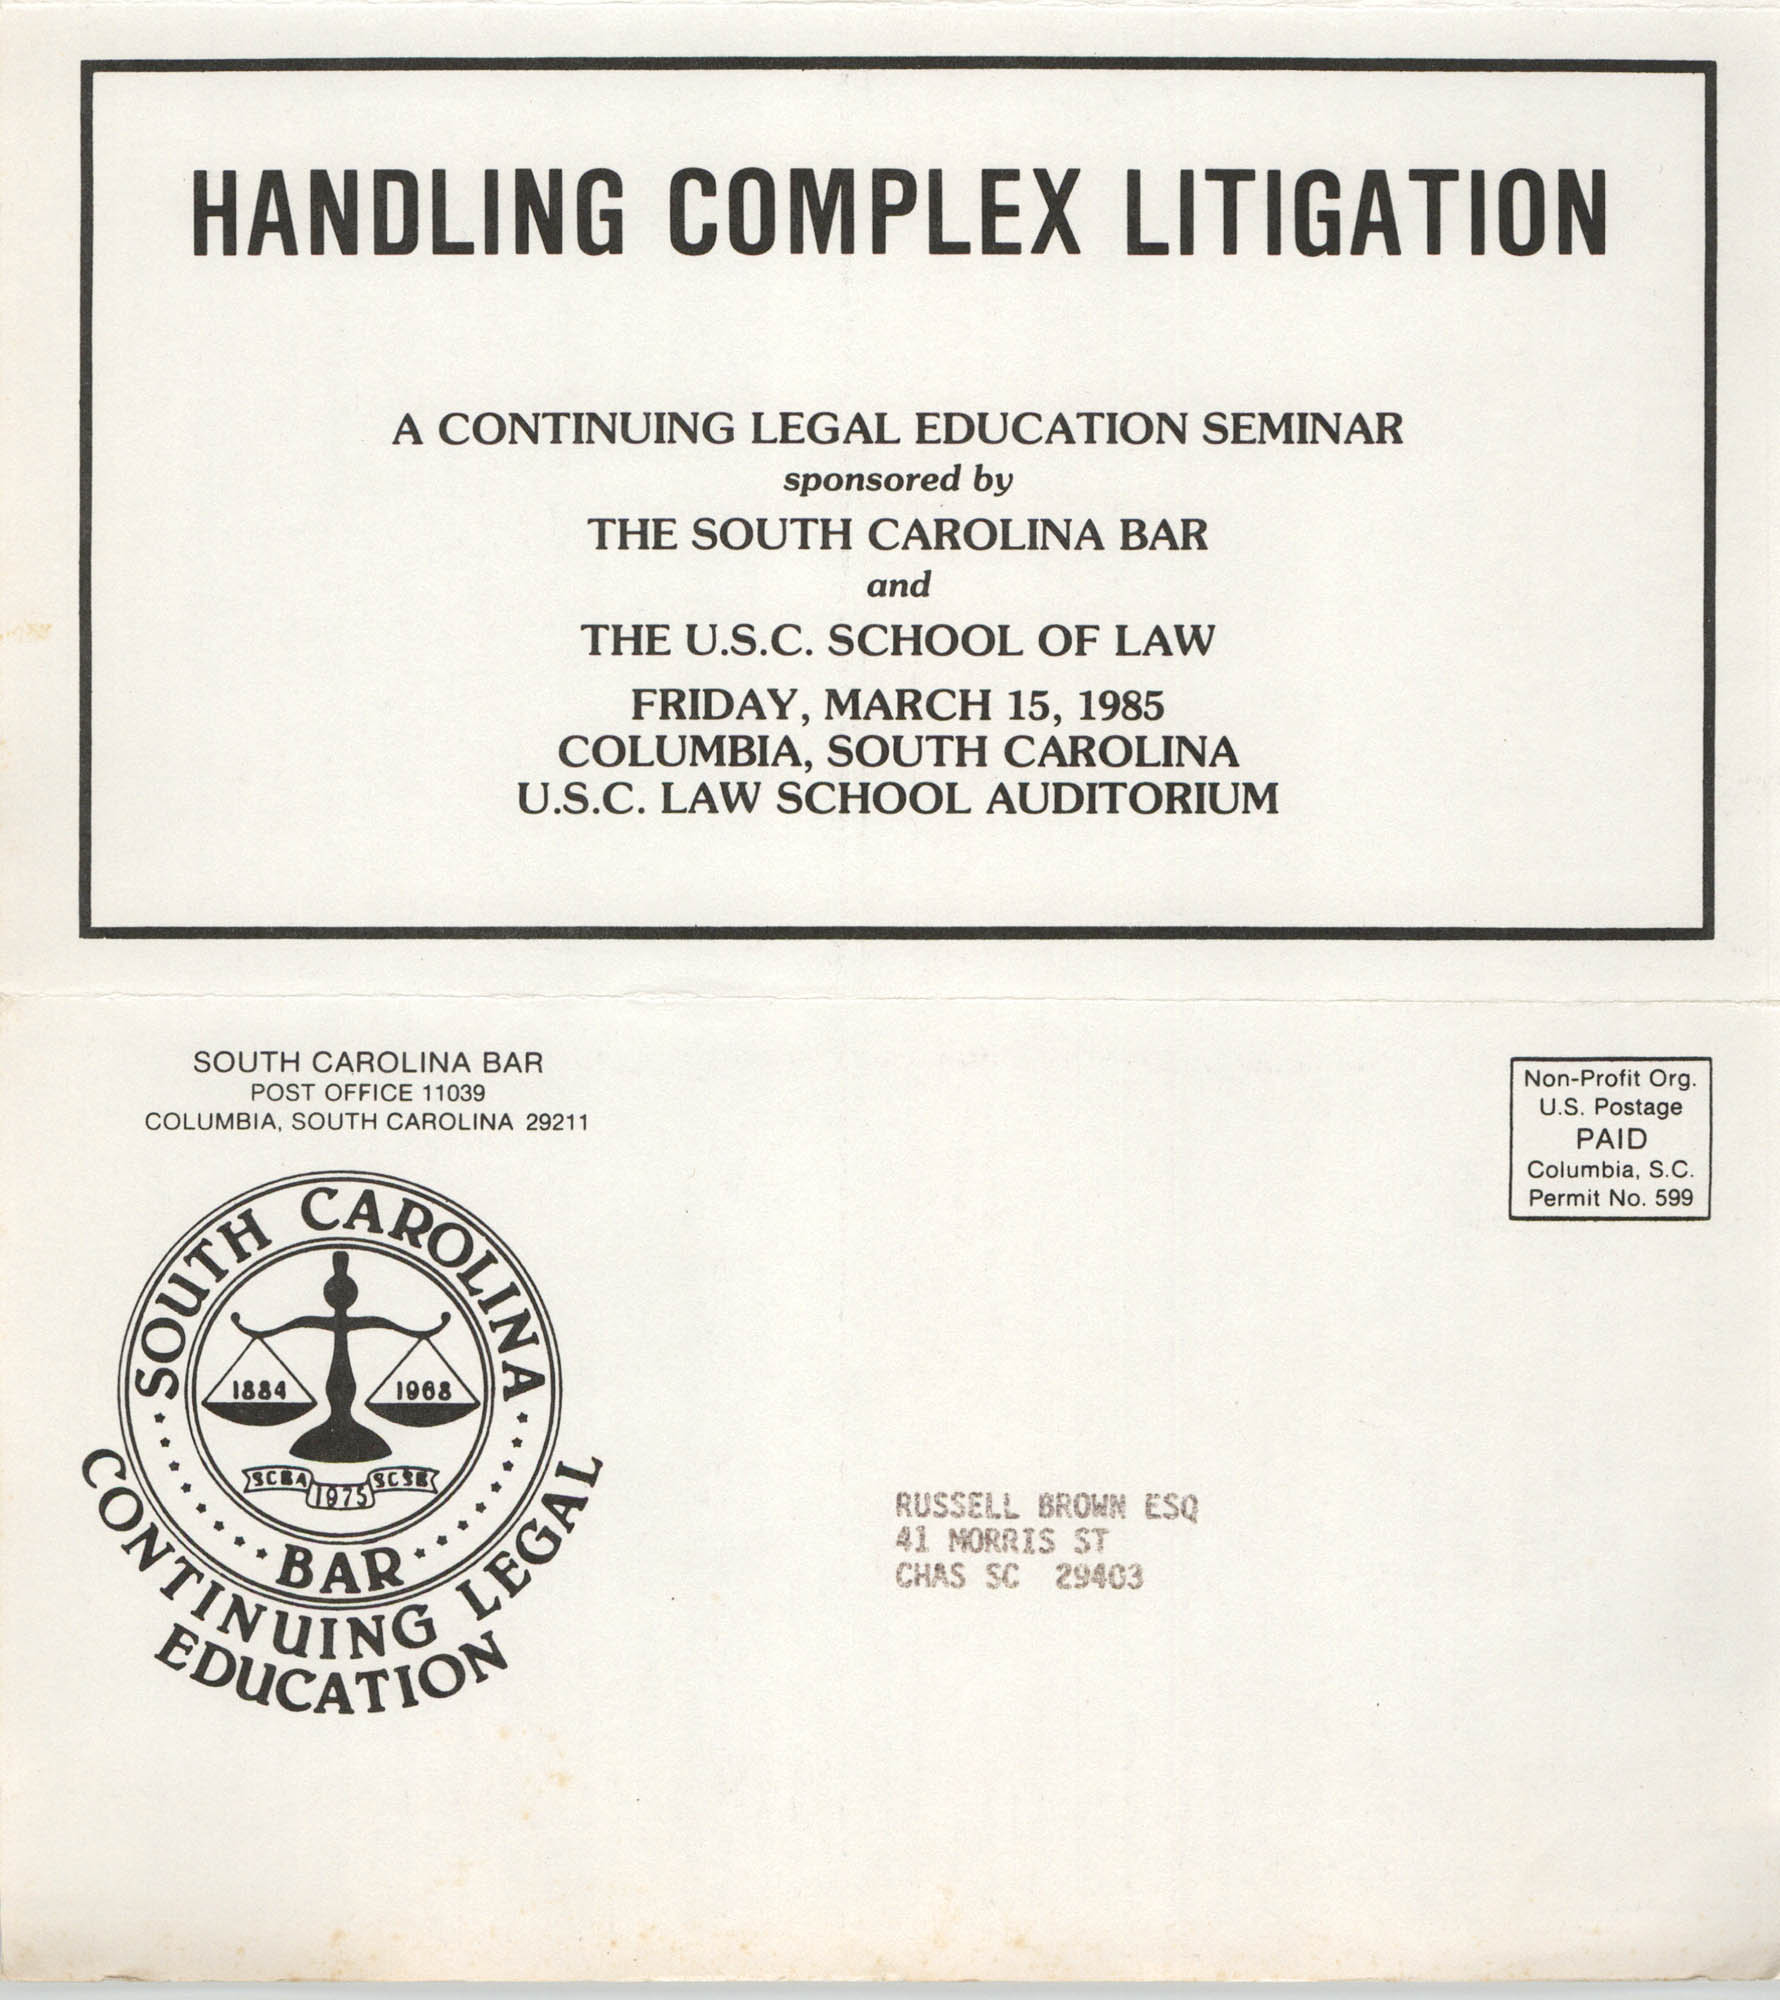 Handling Complex Litigation, Continuing Legal Education Seminar Pamphlet, March 15, 1985, Russell Brown